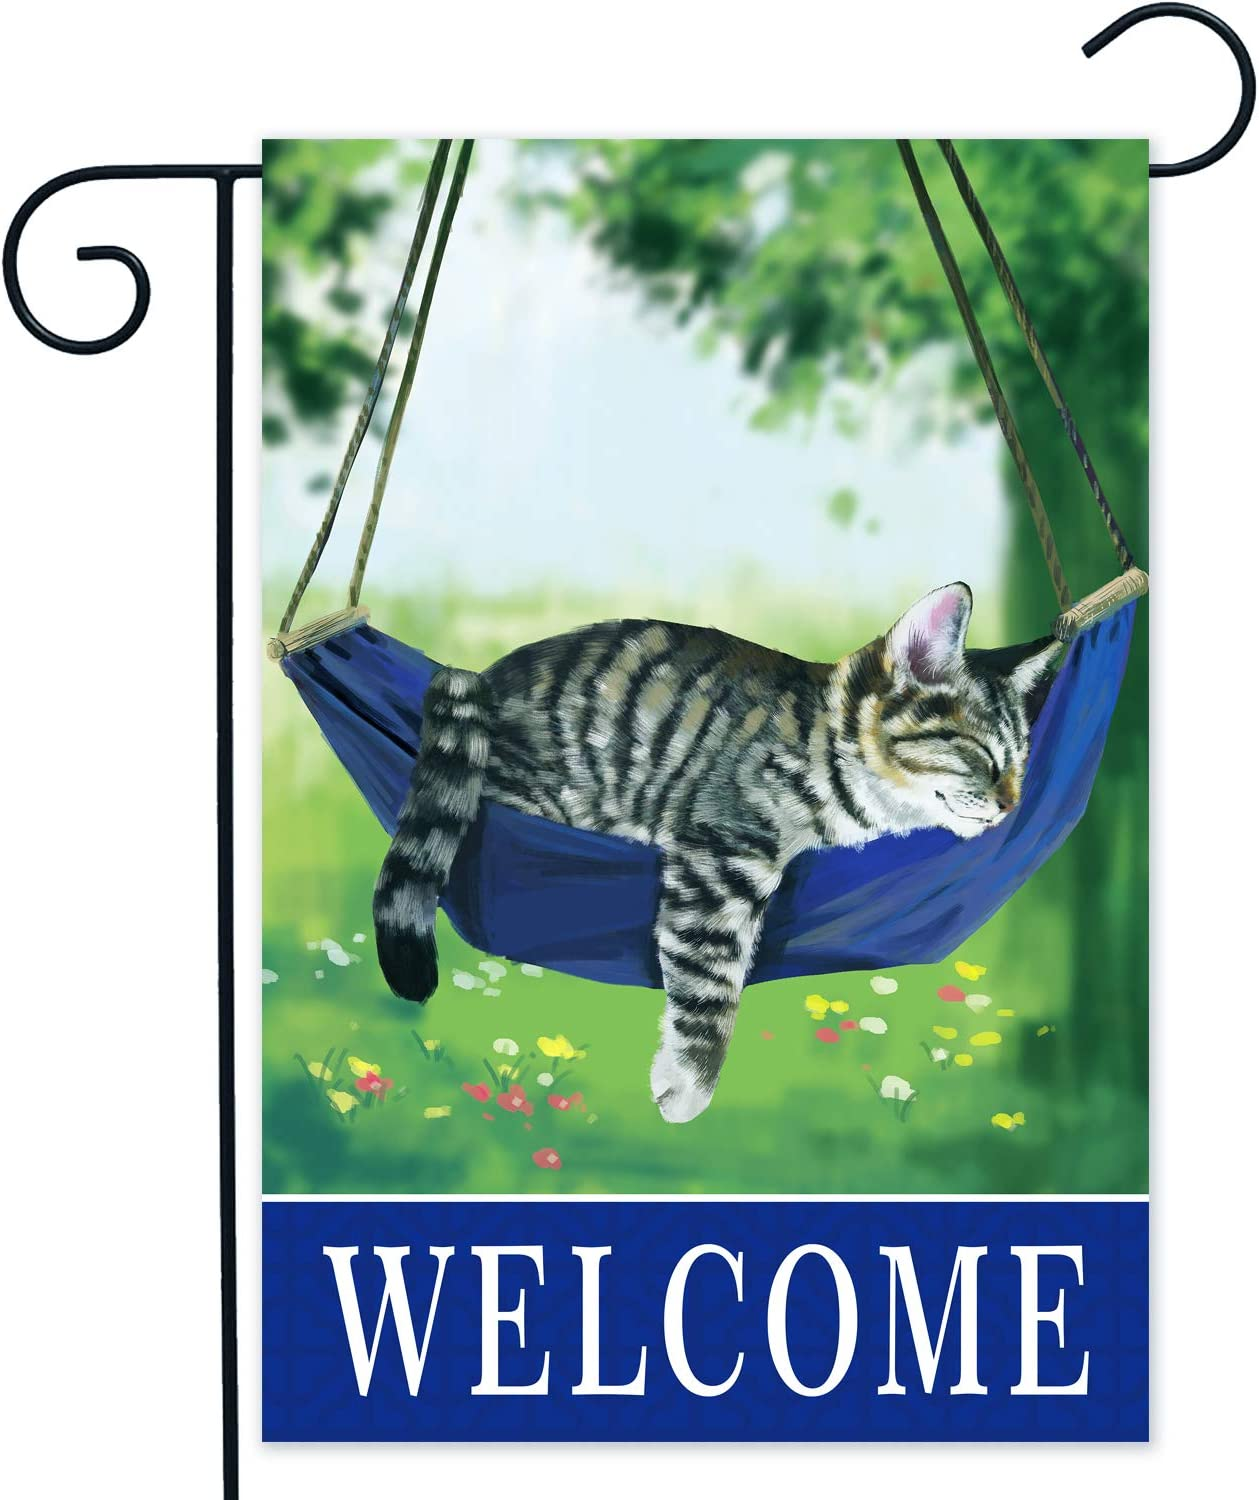 Greneric Welcome Cute and Funny Sleeping Cats, cat Garden Flags, Welcome Spring cat Garden Flag, Suitable for cat Lovers, Double-Sided Garden Flags 12X18 inch, pet Garden Flags,Black cat Garden Flag